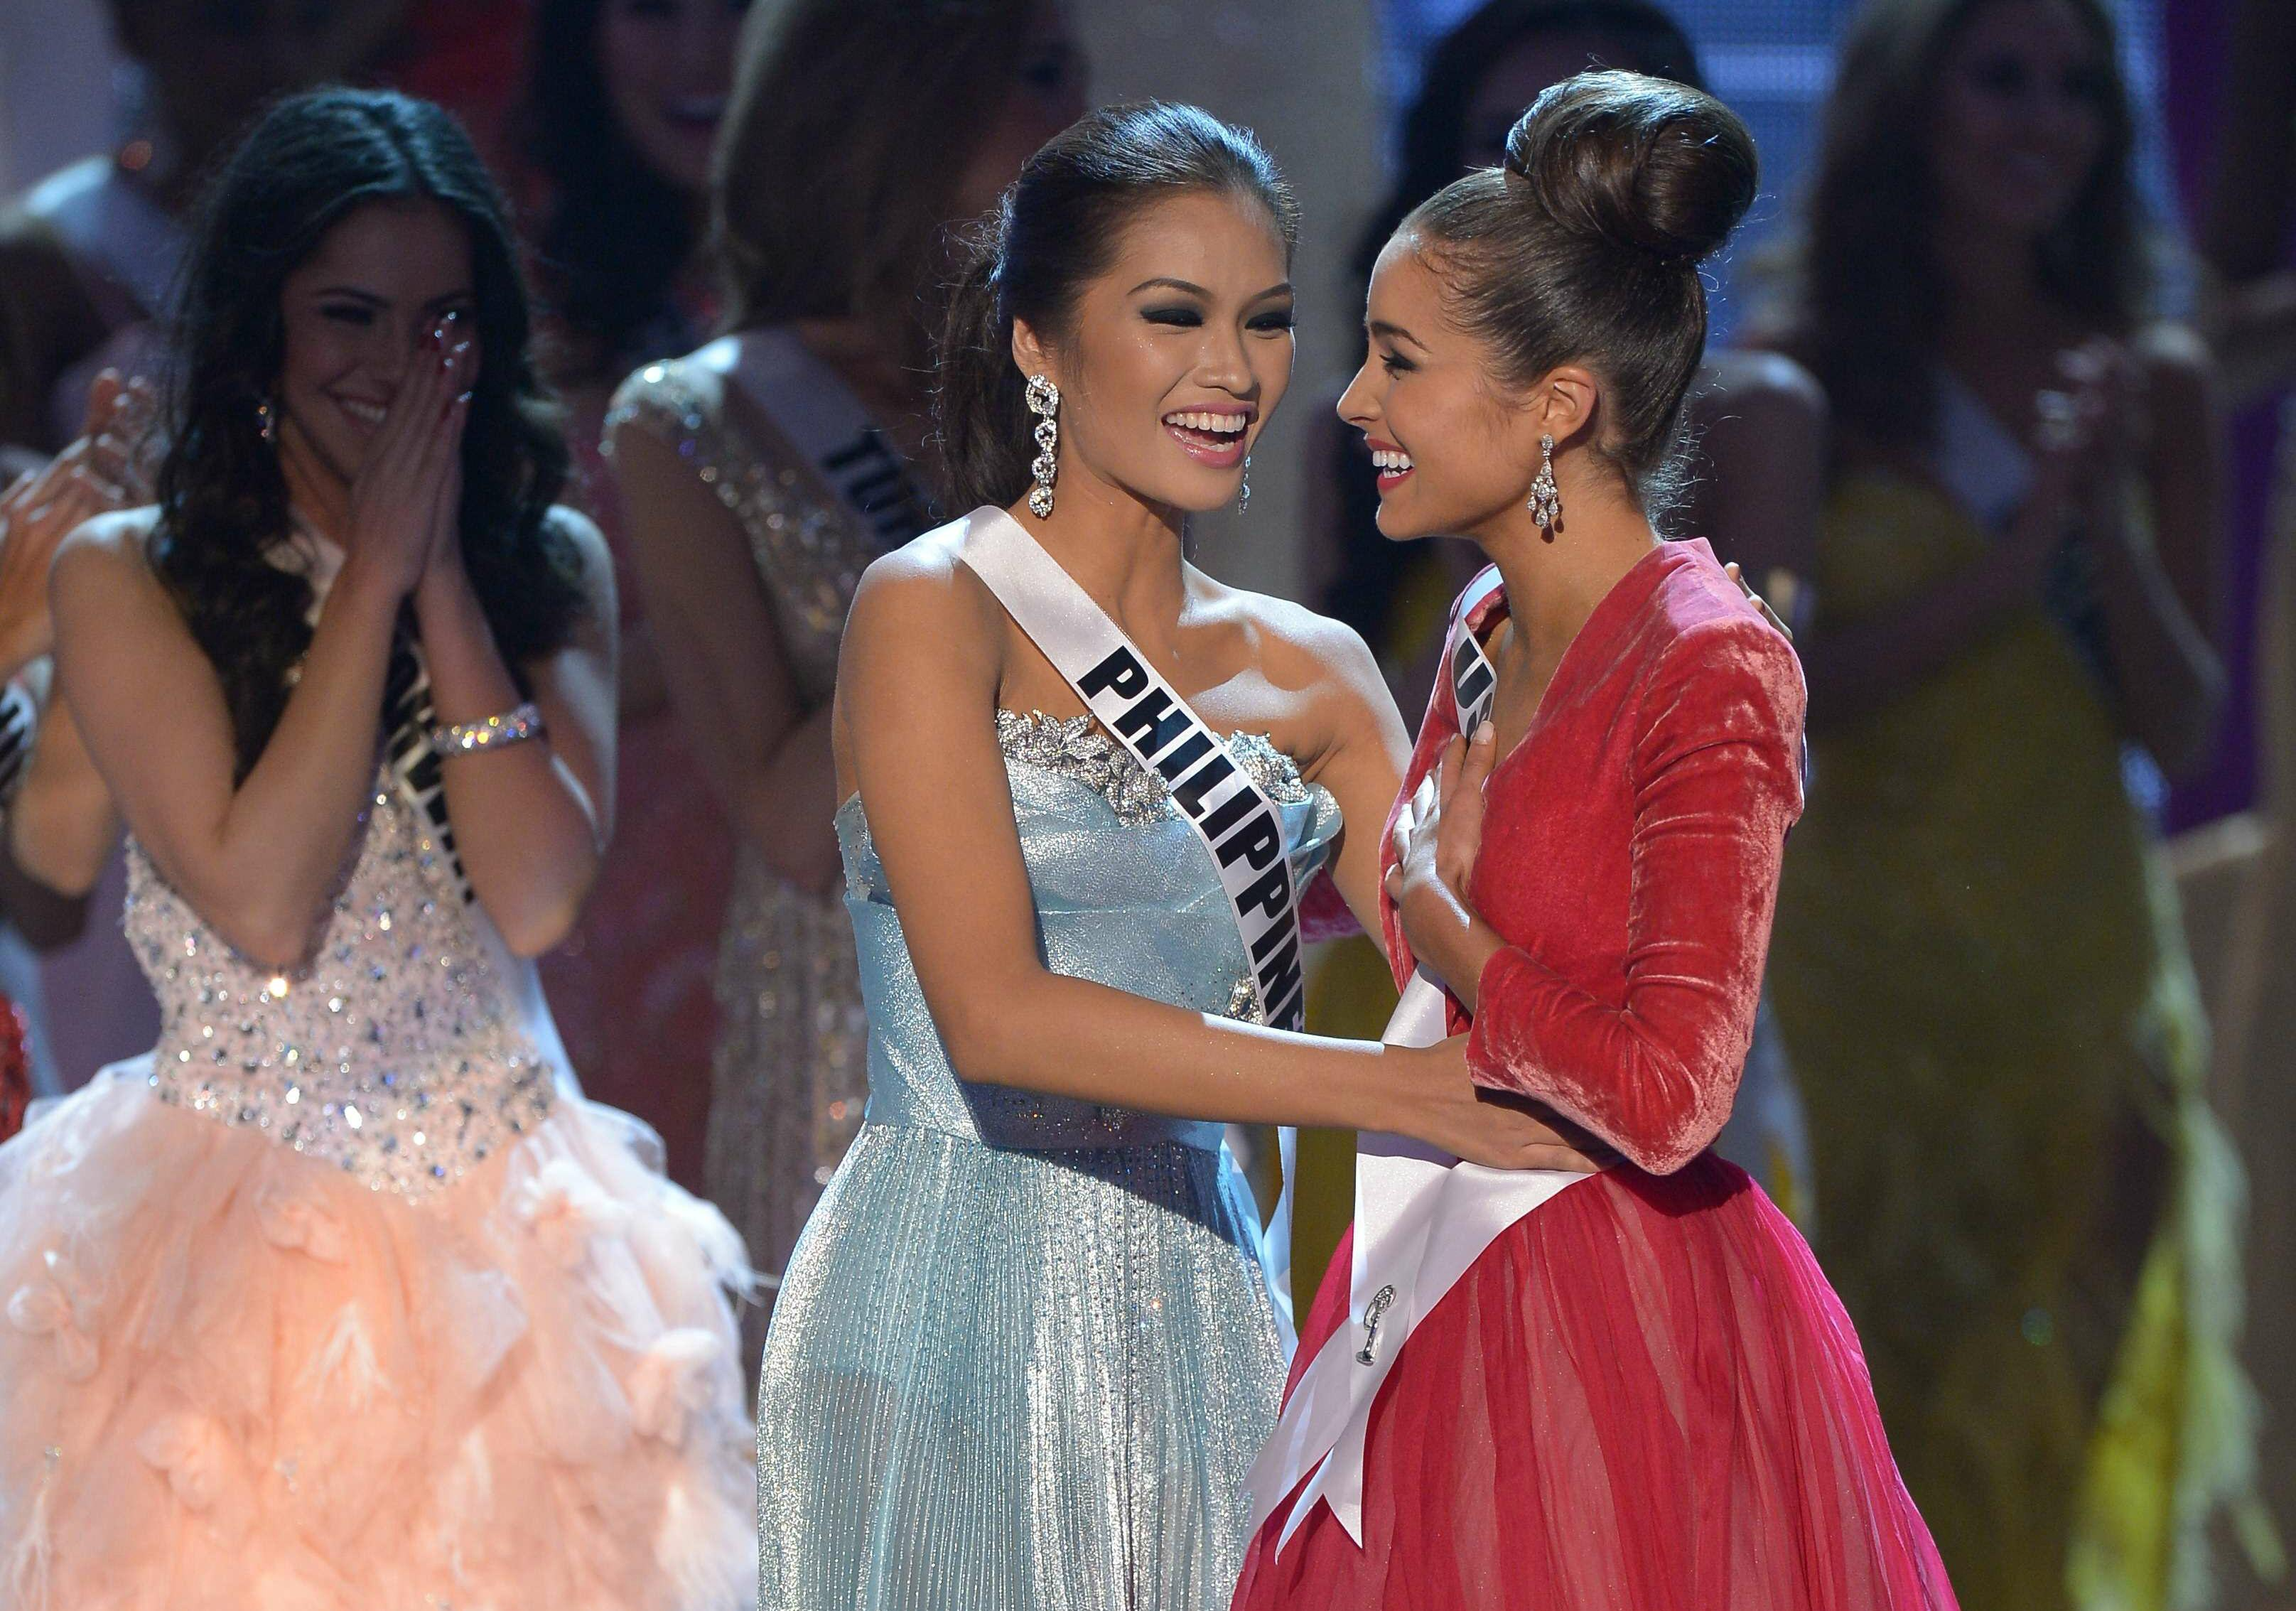 miss philippines 2012 janine tugonon runner up at miss